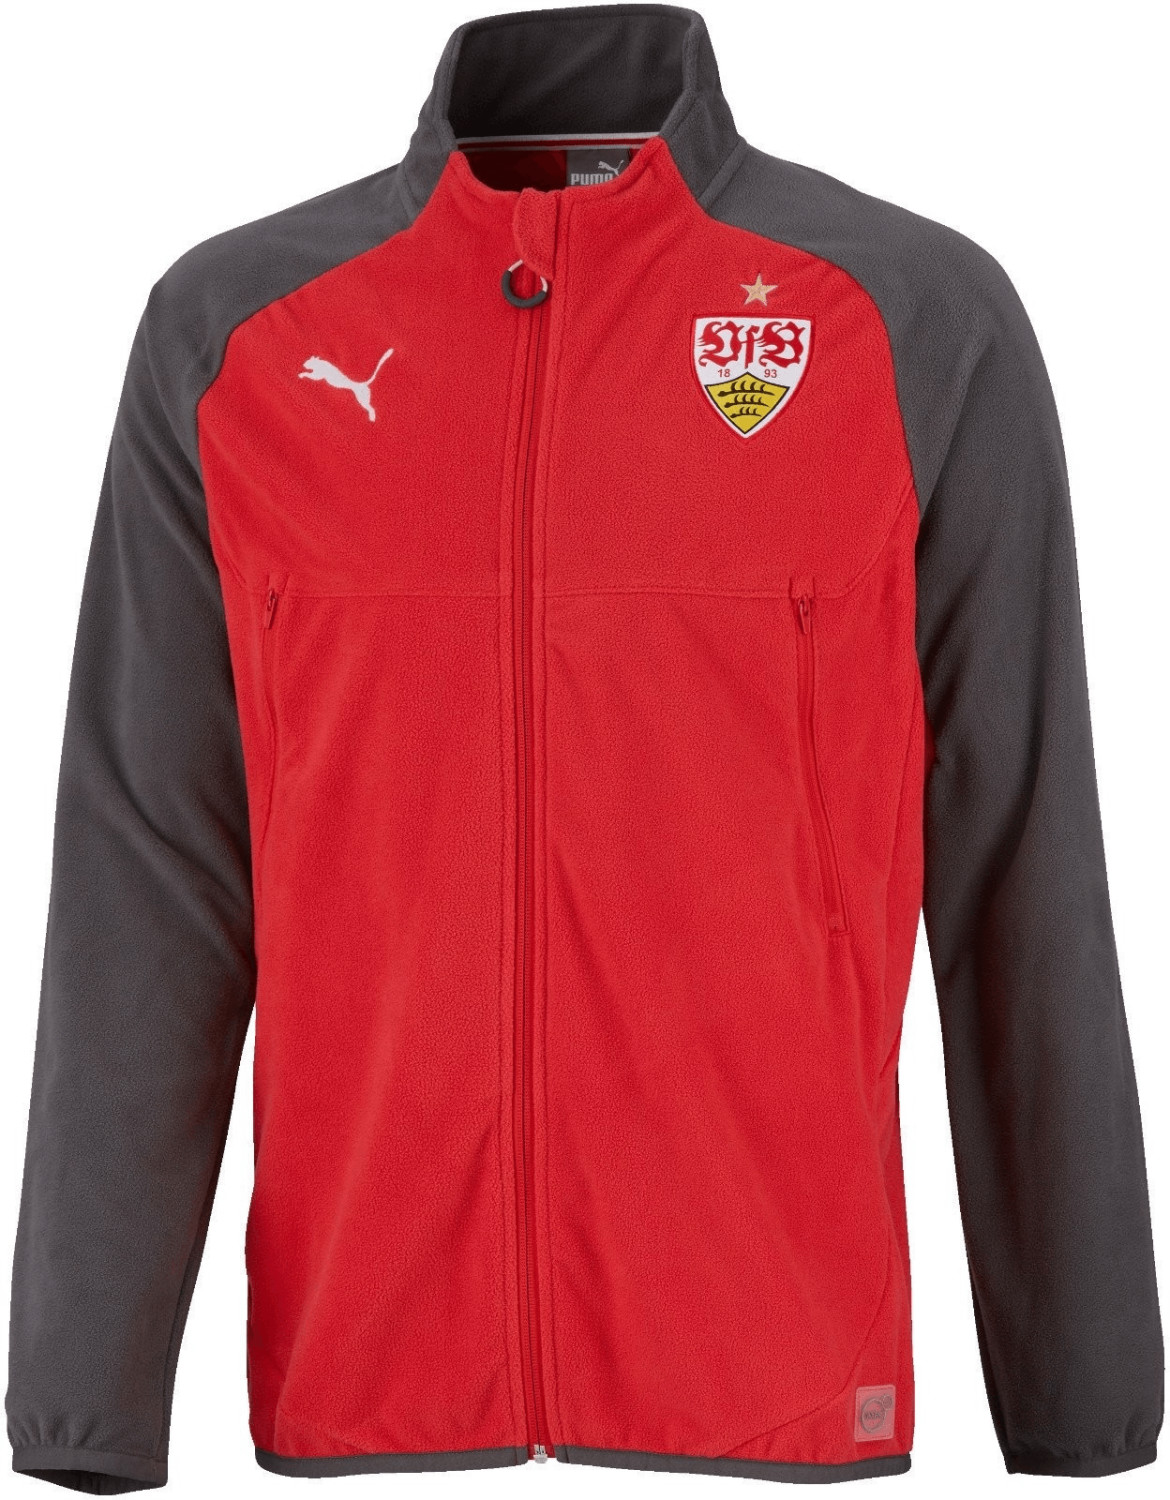 Puma VfB Stuttgart Fleece Trainingsjacke Kinder...